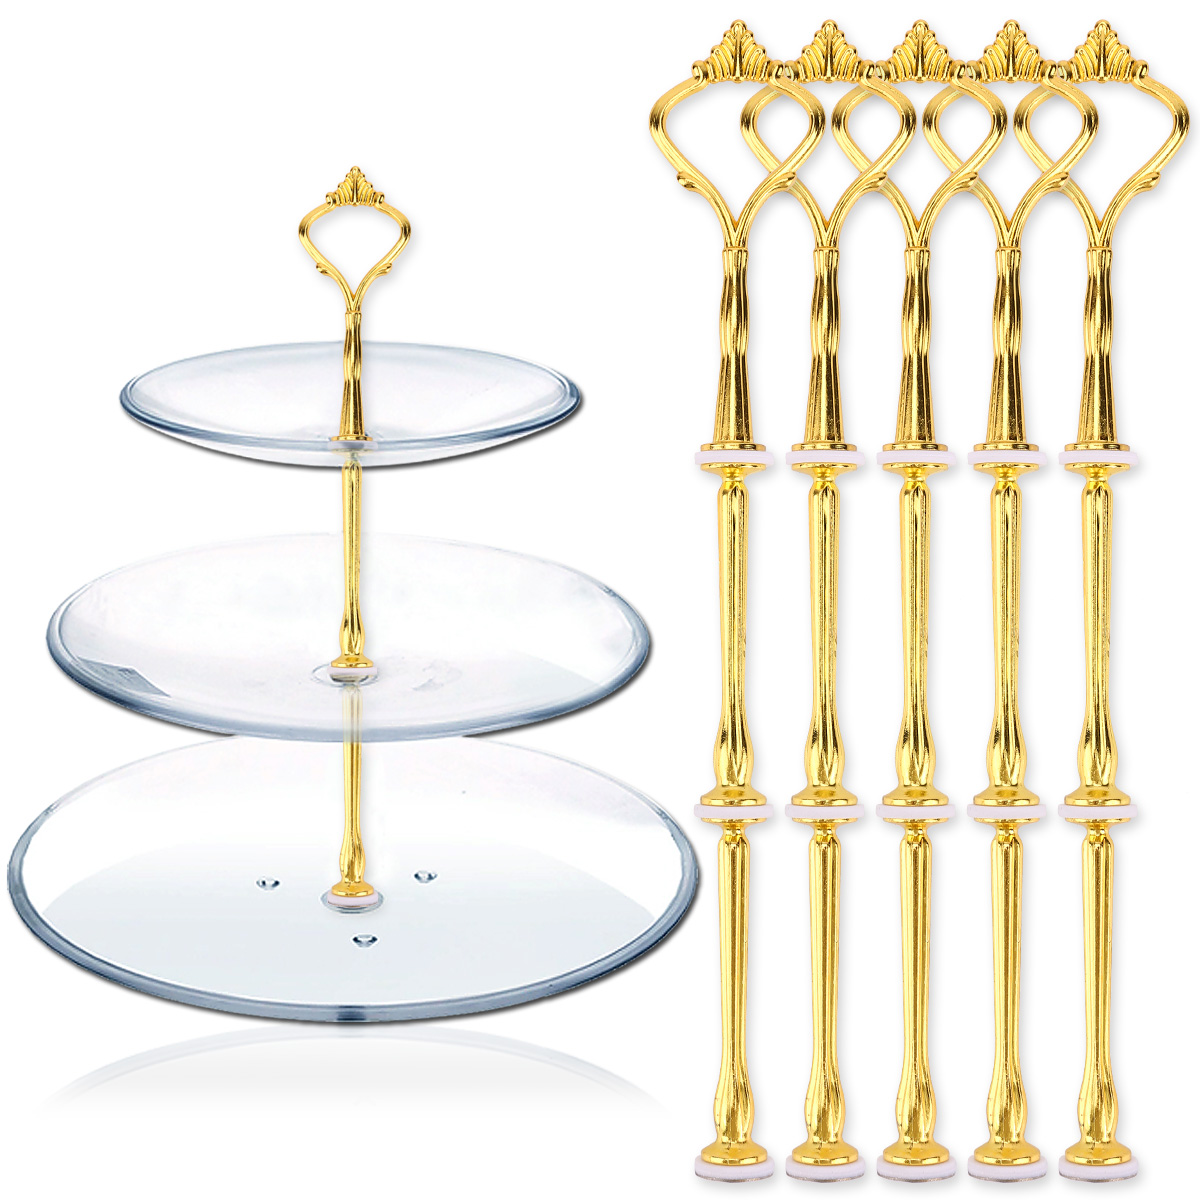 Image Result For Hite Cake Stand